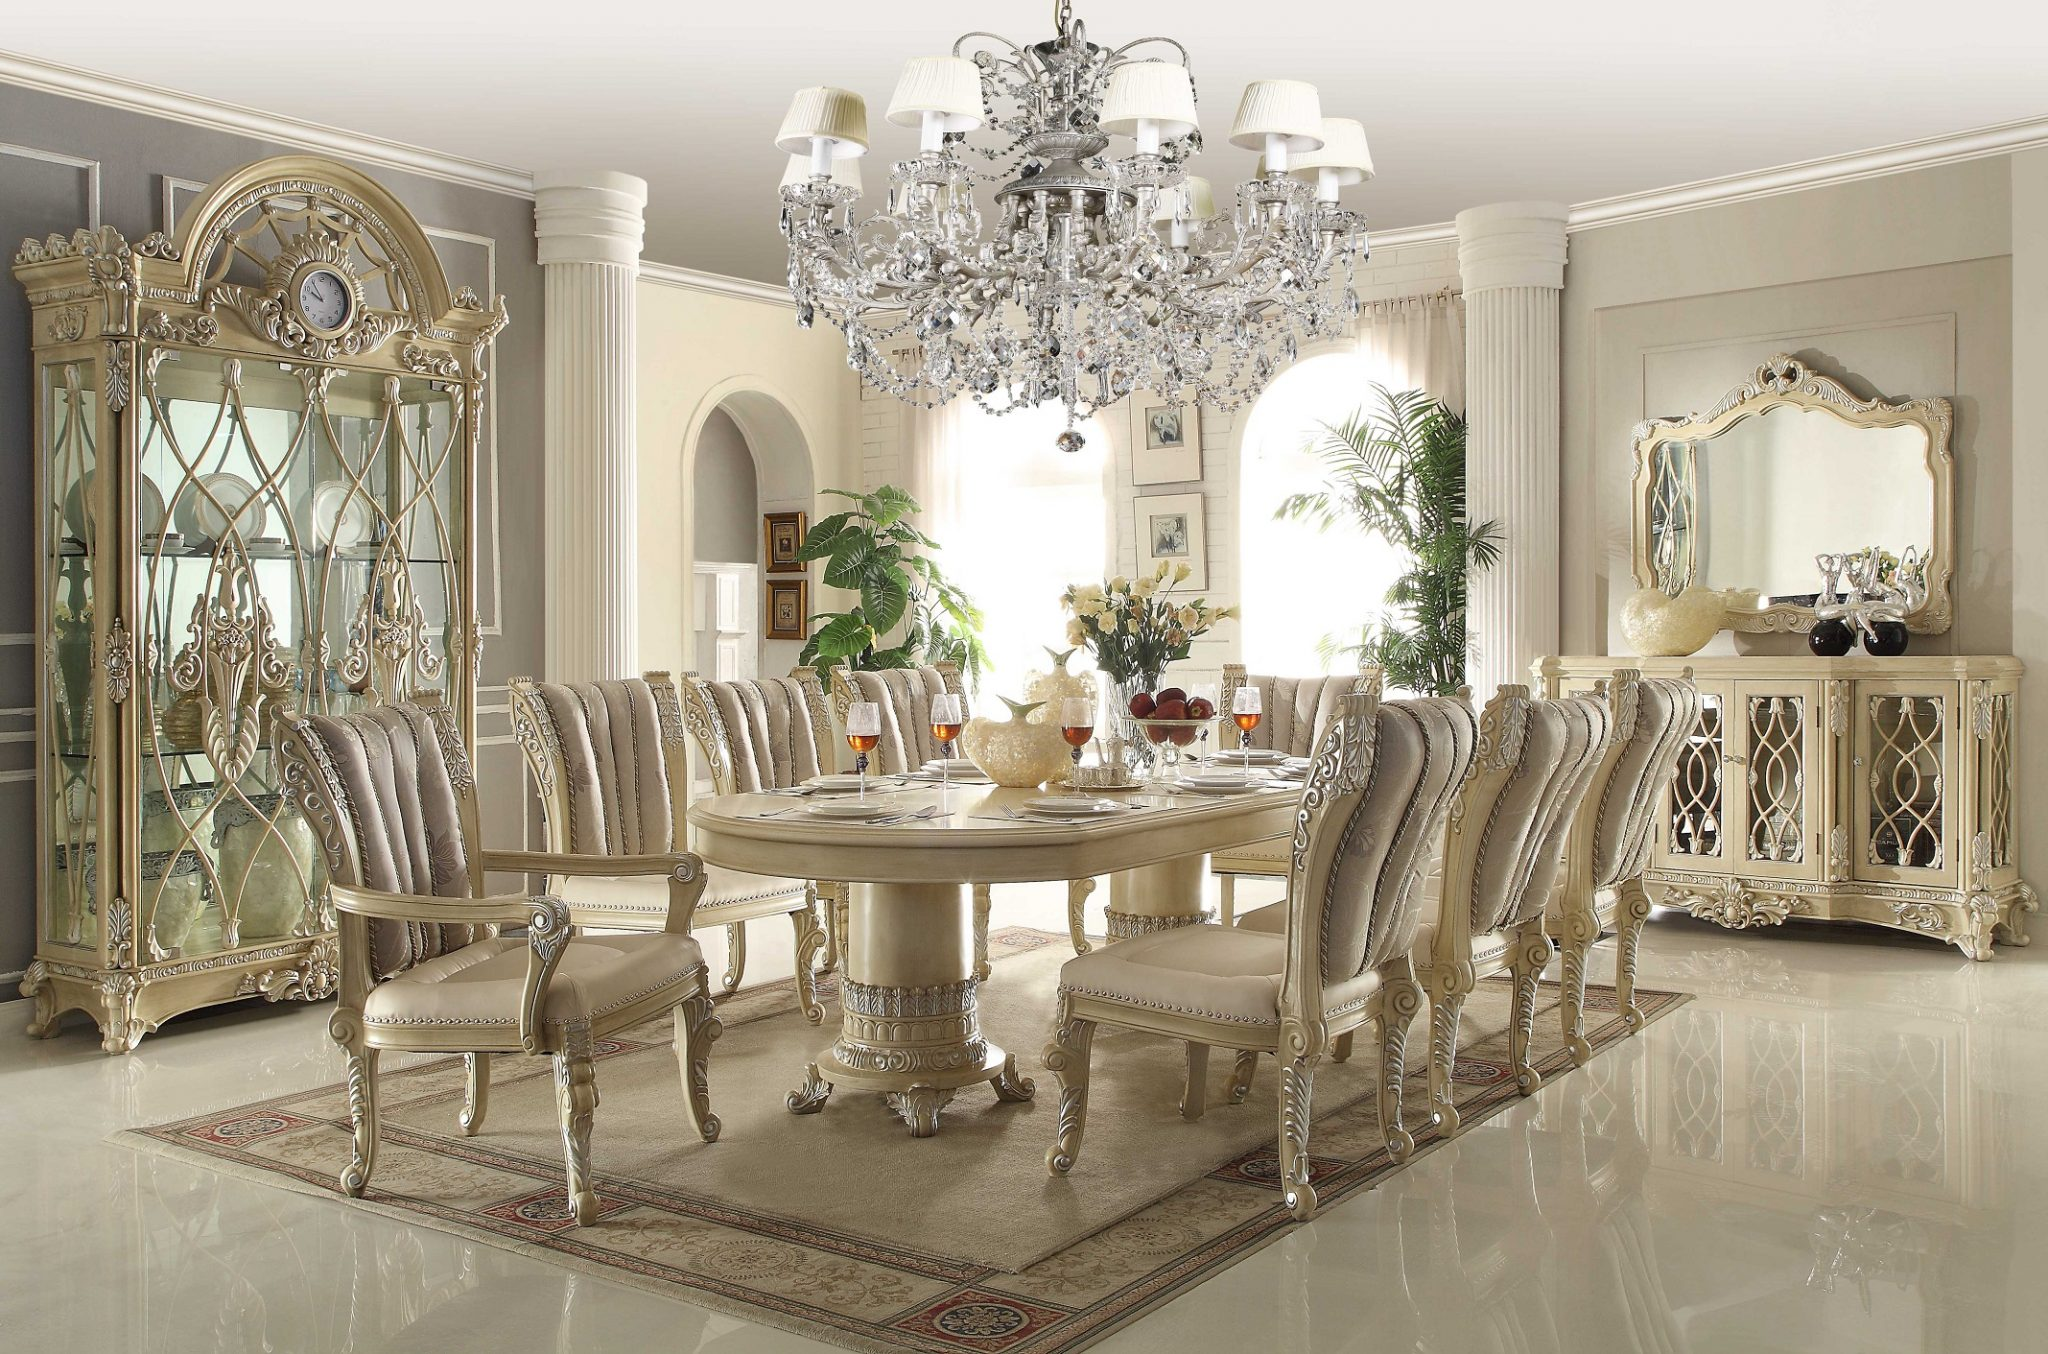 hd 5800 homey design royal dining collection set furniture of america marion contemporary 7 piece glass top